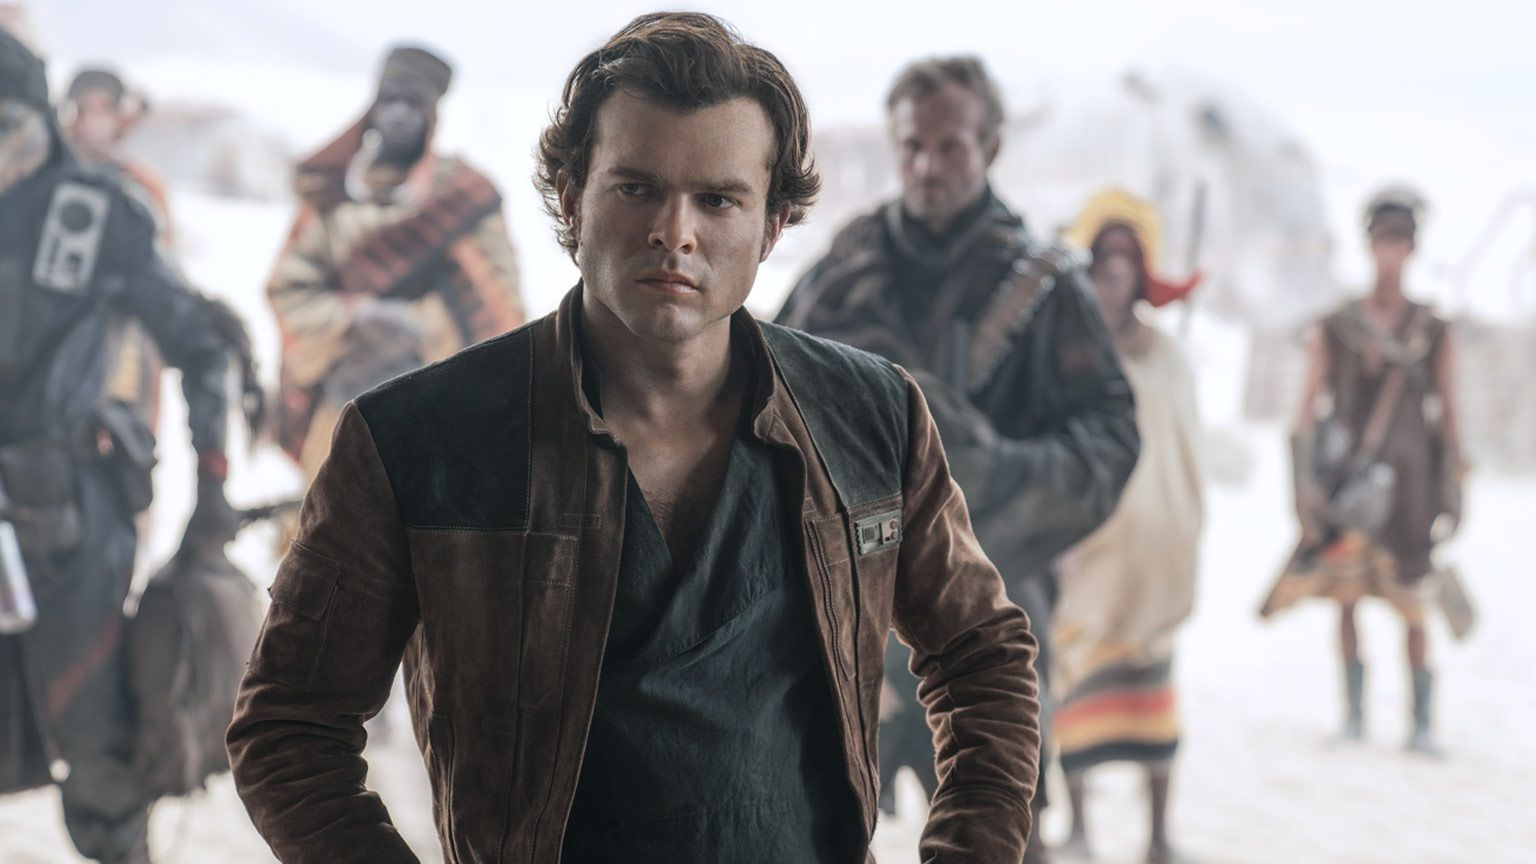 #onthebigscreen: Solo: A Star Wars Story, Romance, Dancing And Opera photo